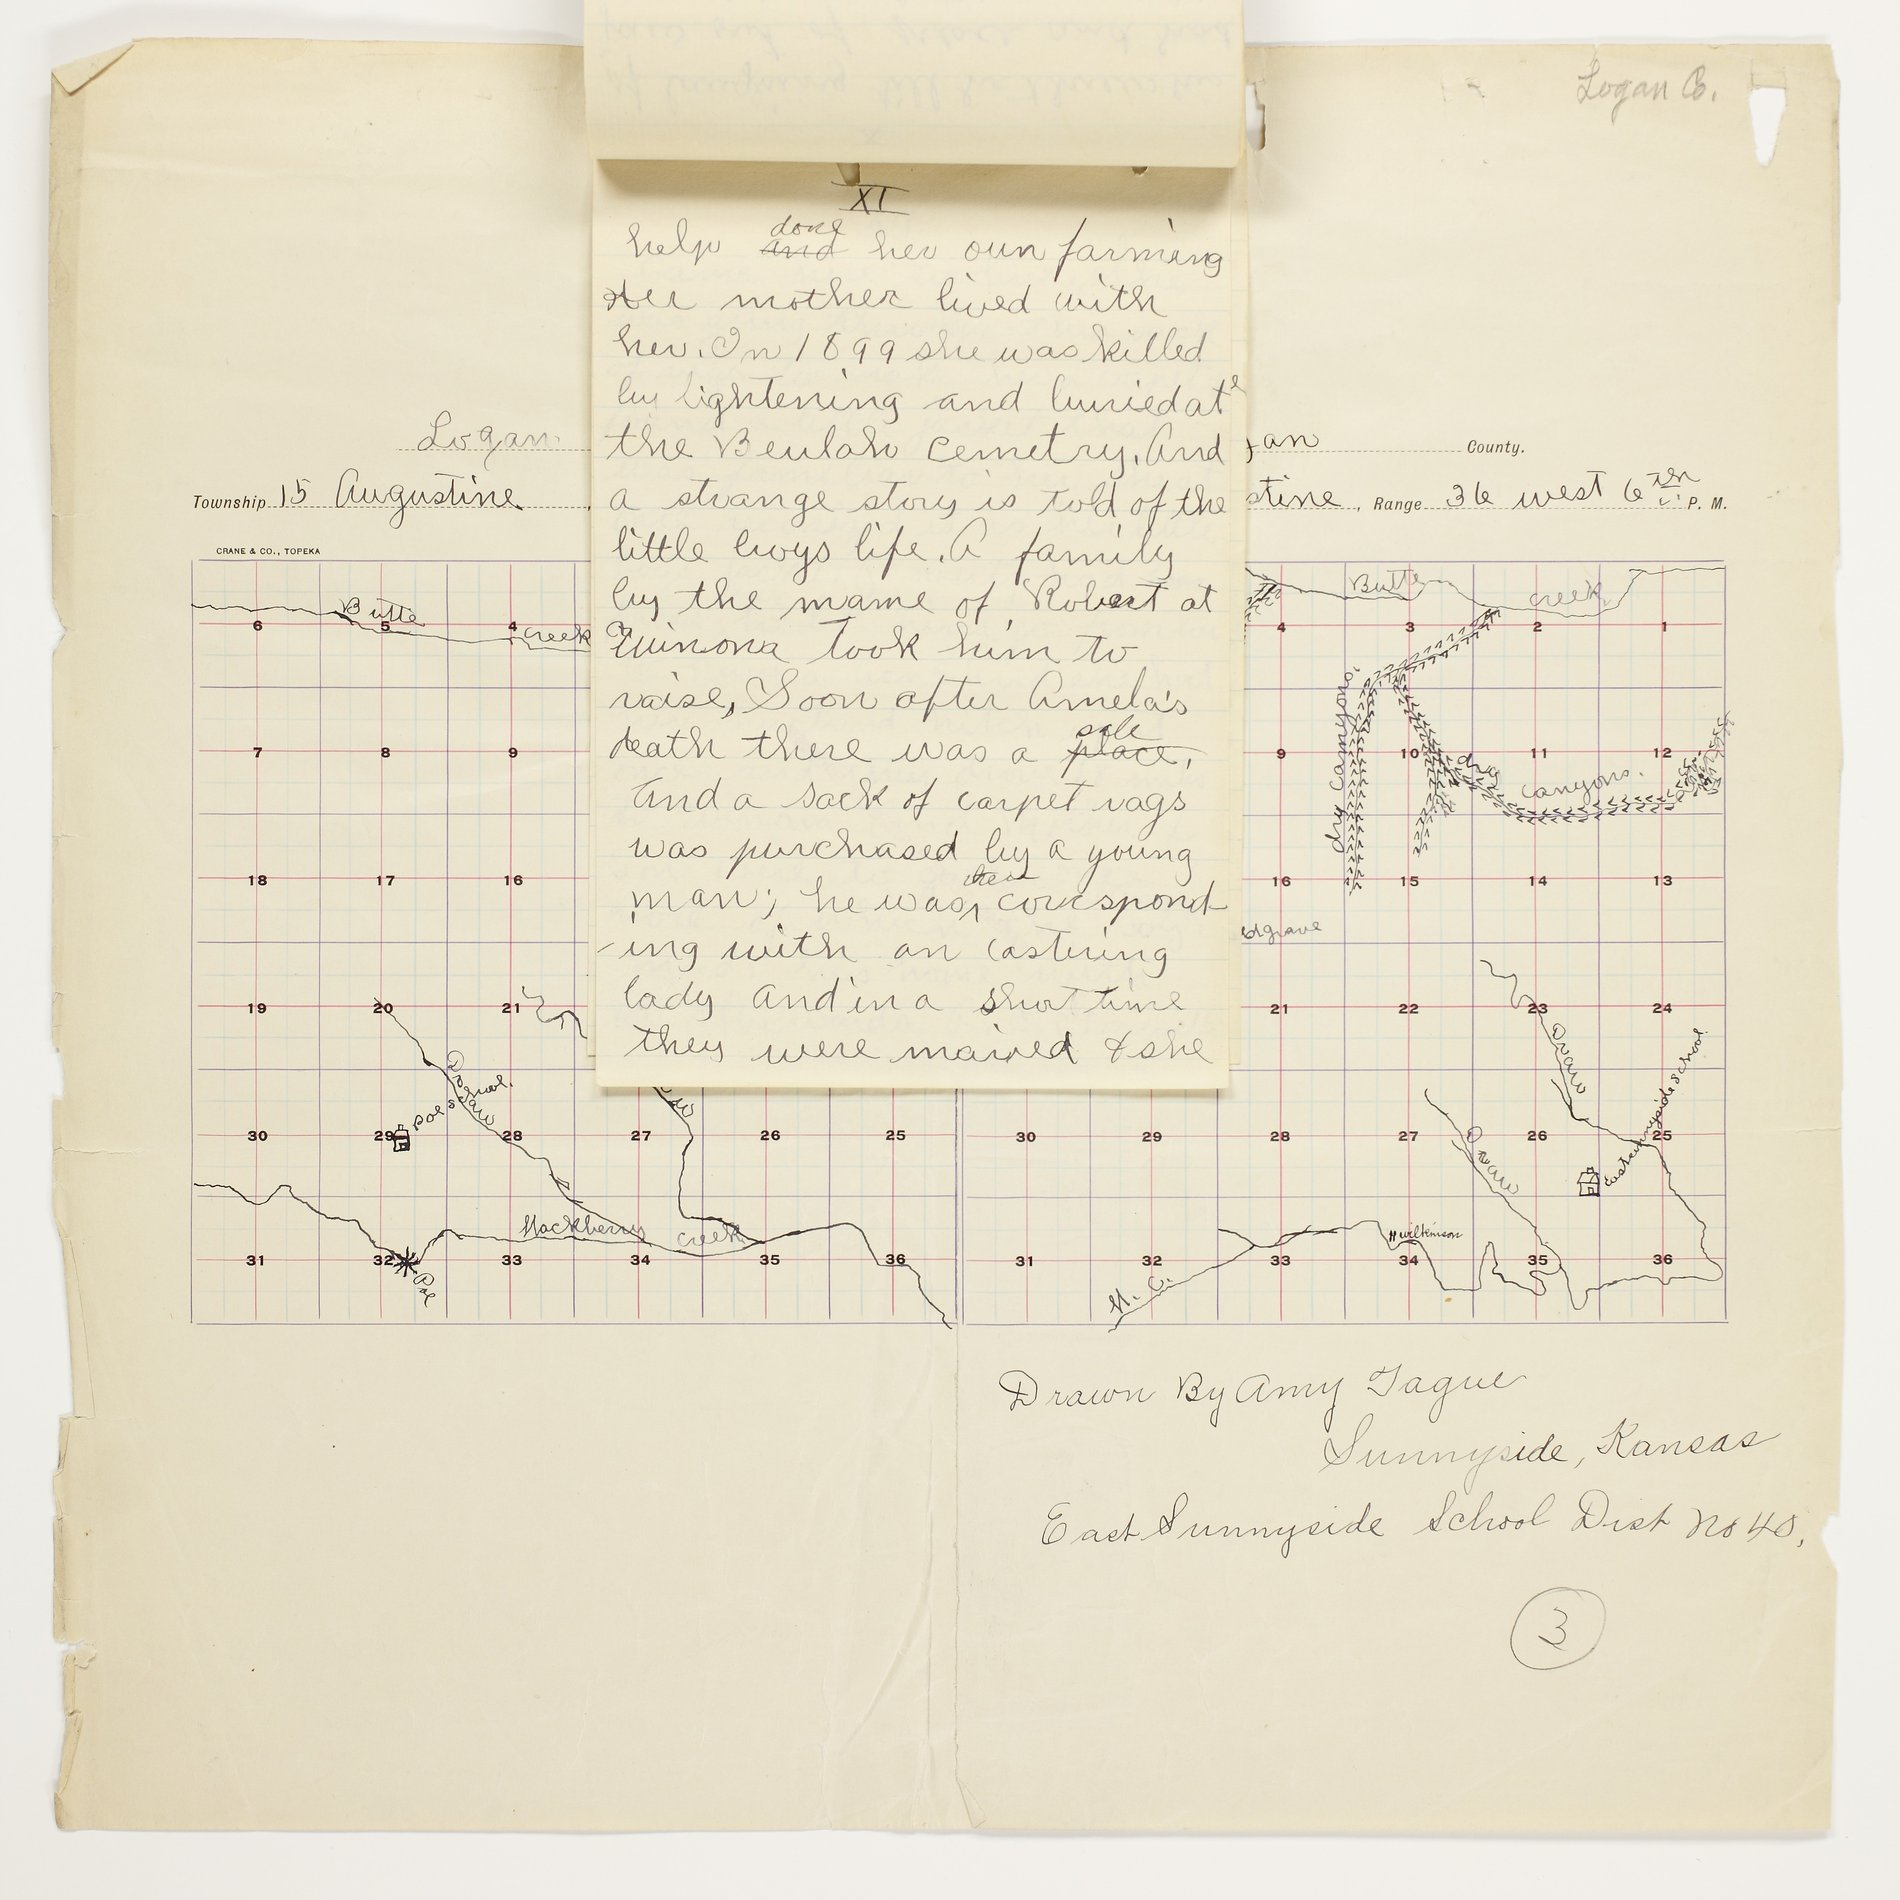 Amy O. Tague's map of Augustine Township, Logan County - 11